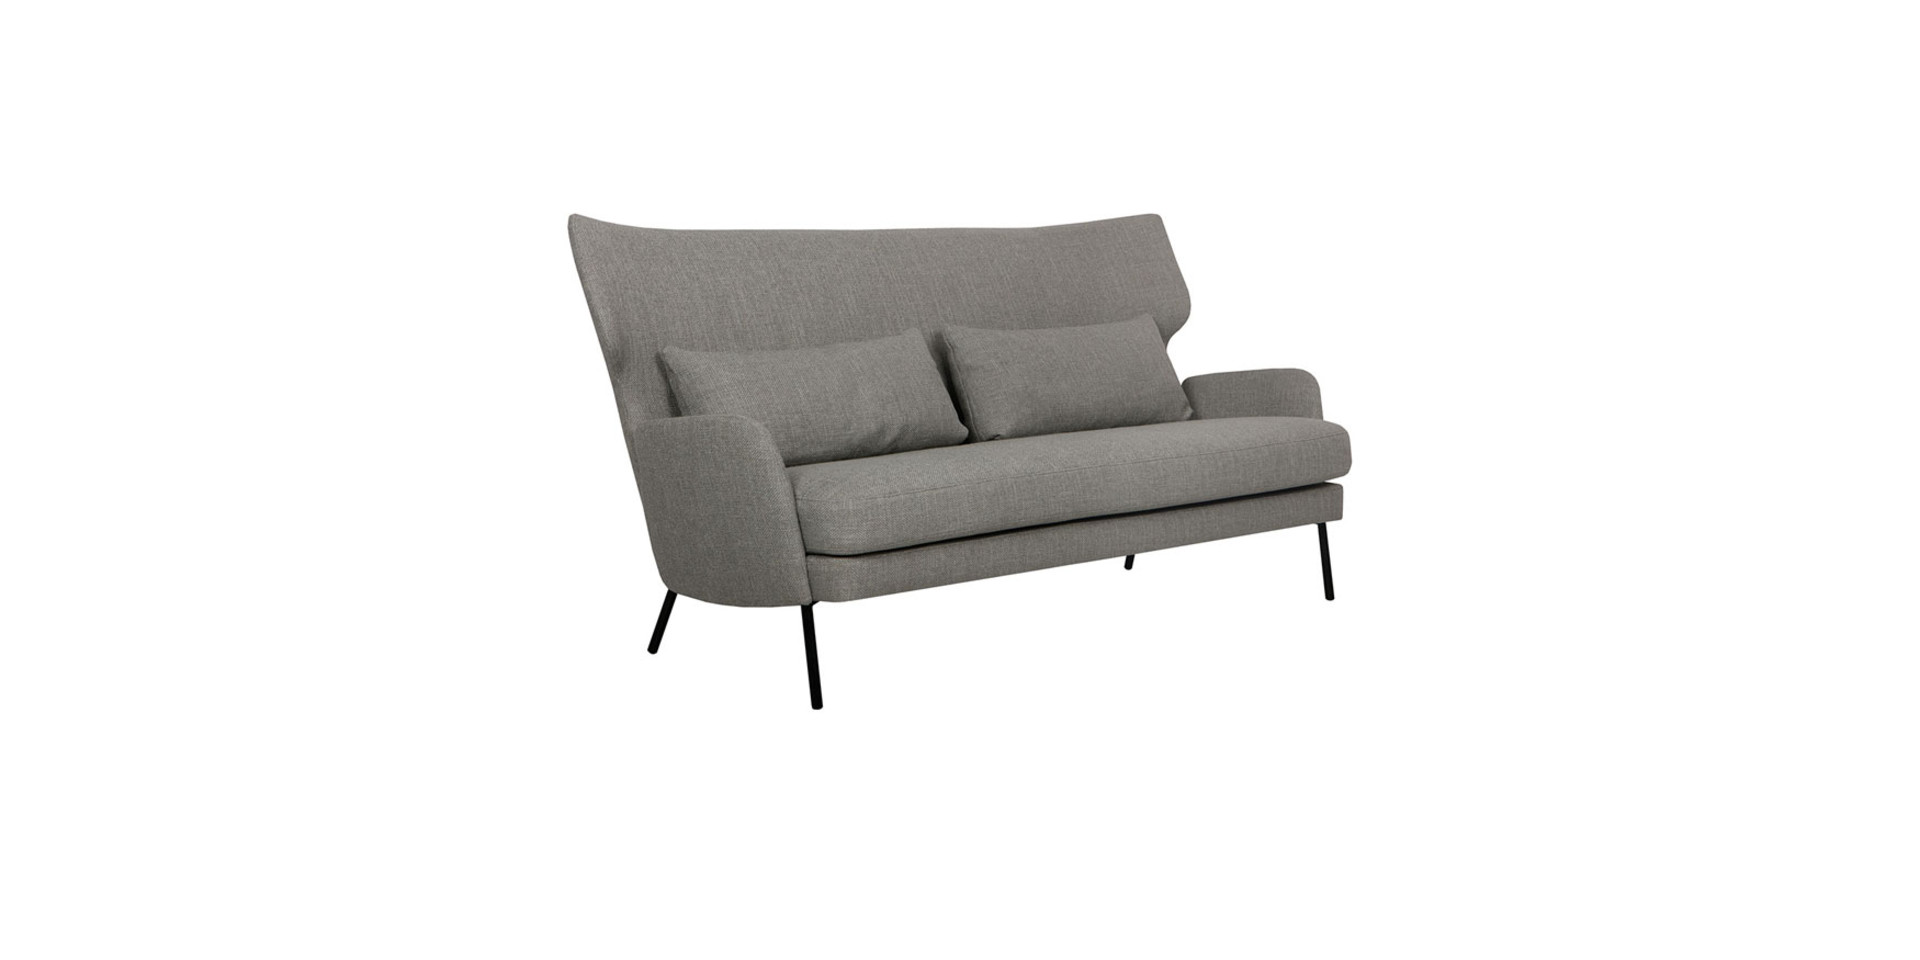 sits-alex-canape-25seater_bermuda5_light_grey_2